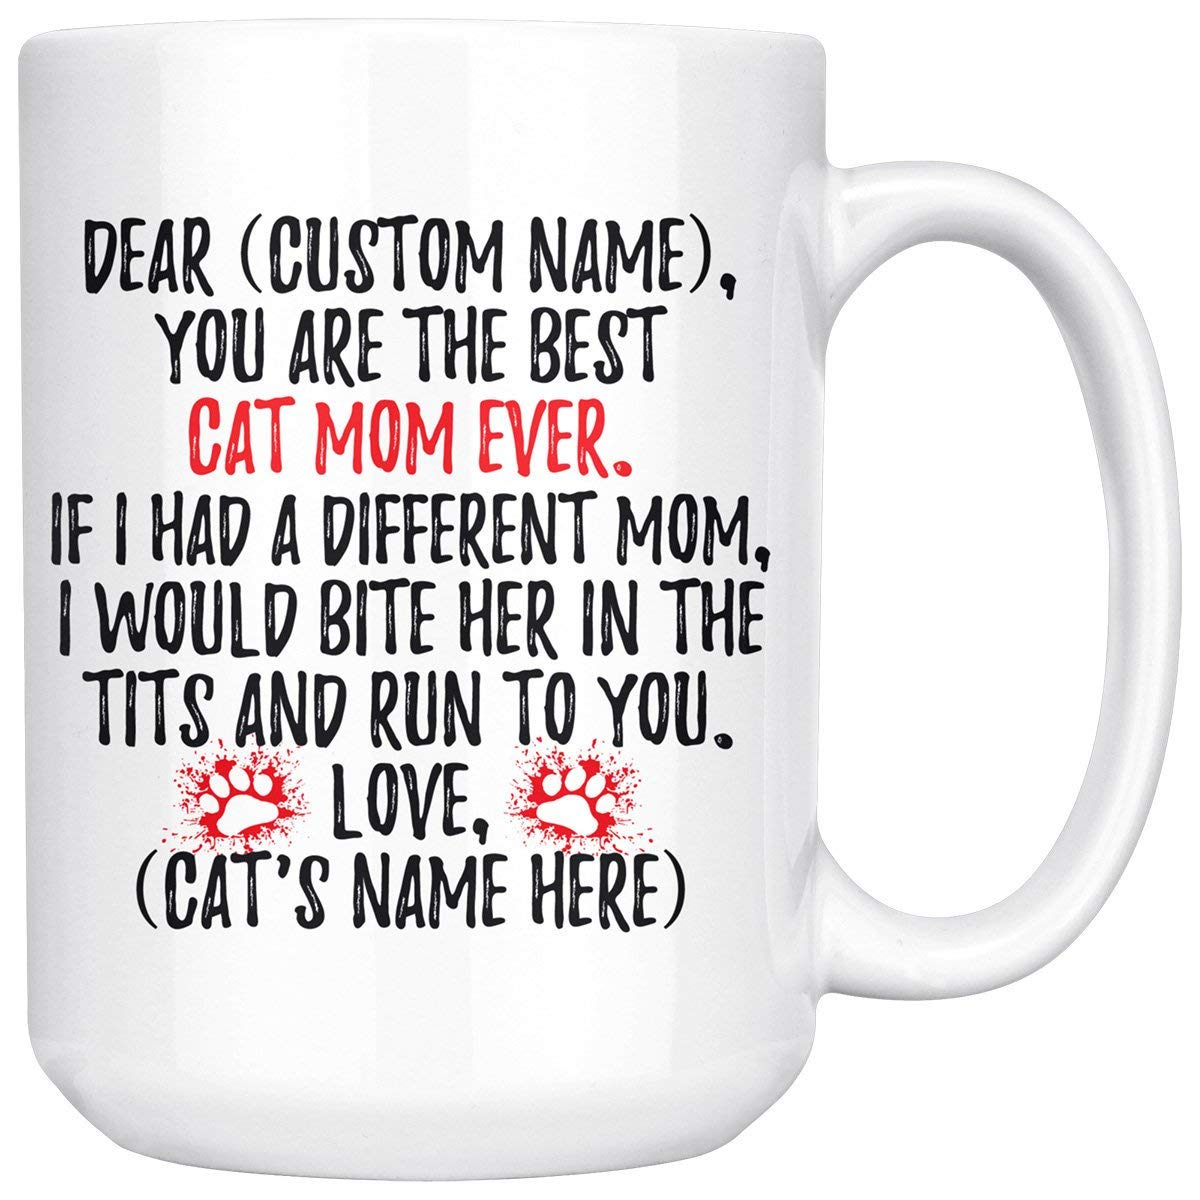 Personalized Cat Mom Gifts, Cat Gifts For Women, Cat Mom Mug, Best Cat Mom Ever, Funny Cat Gift, Cat Lover Gifts, Cat Lady Coffee Cup (15 oz)